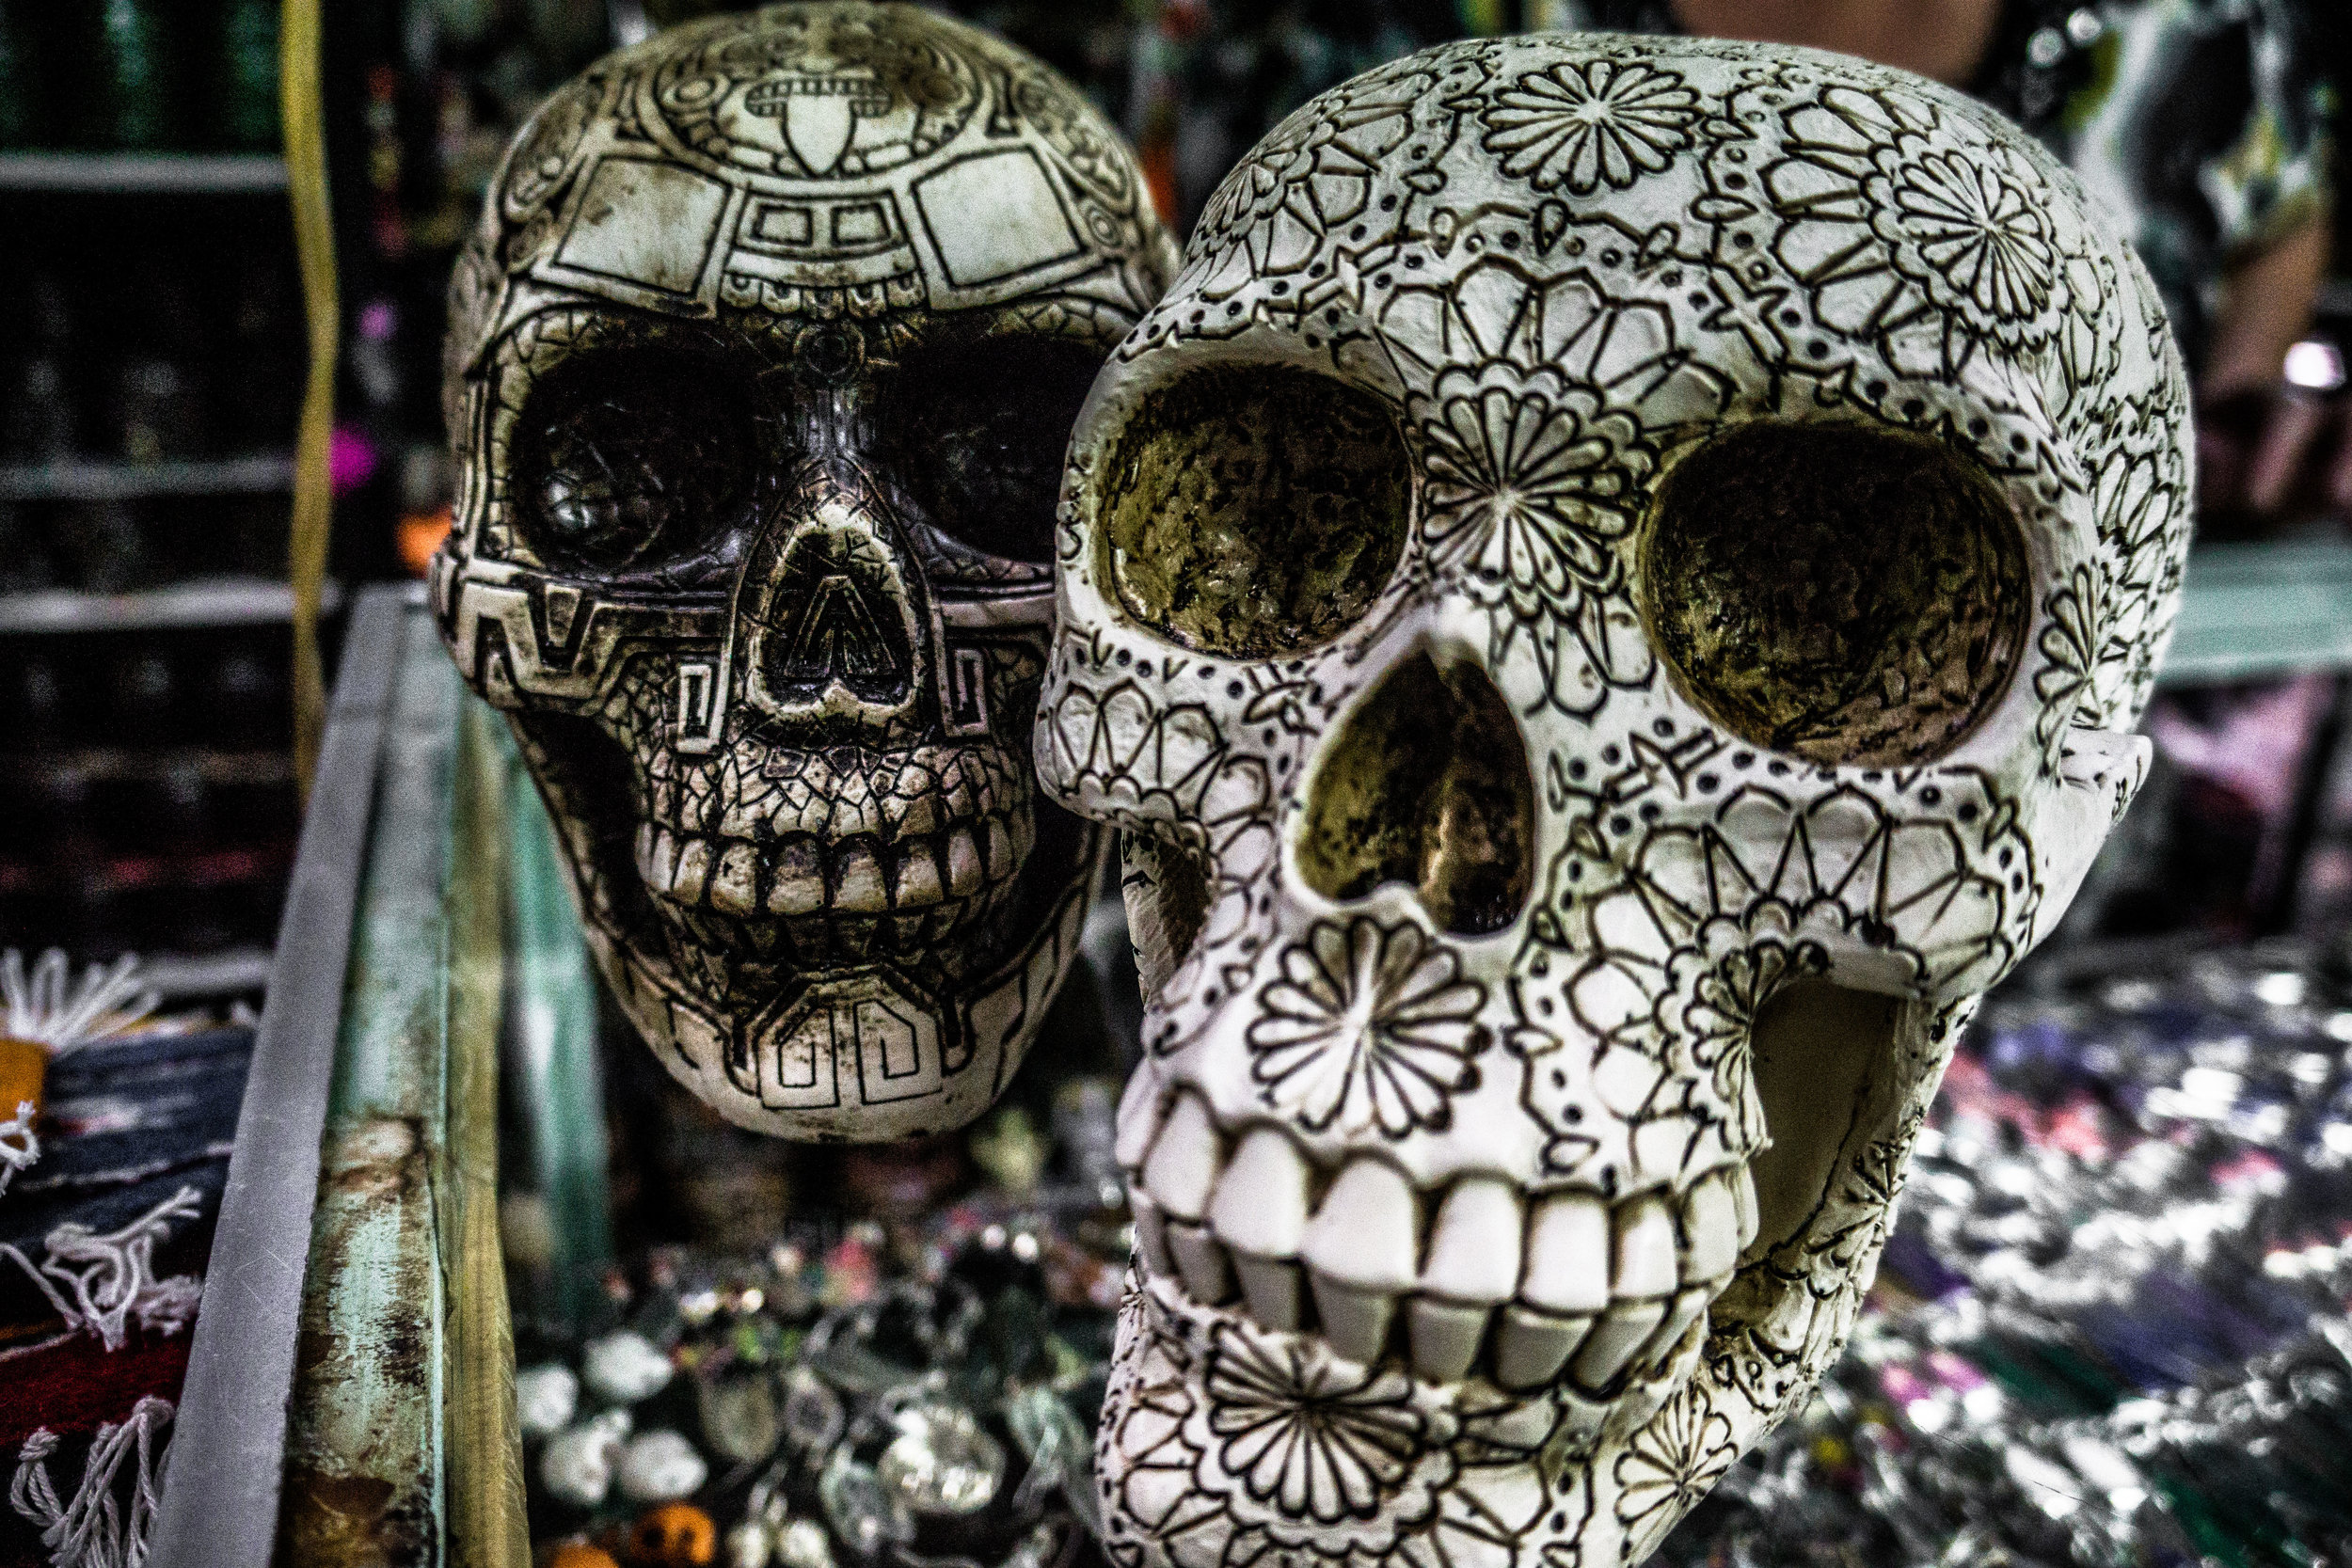 vickygood_photography_travel_sugarskull_scoulptures.jpg